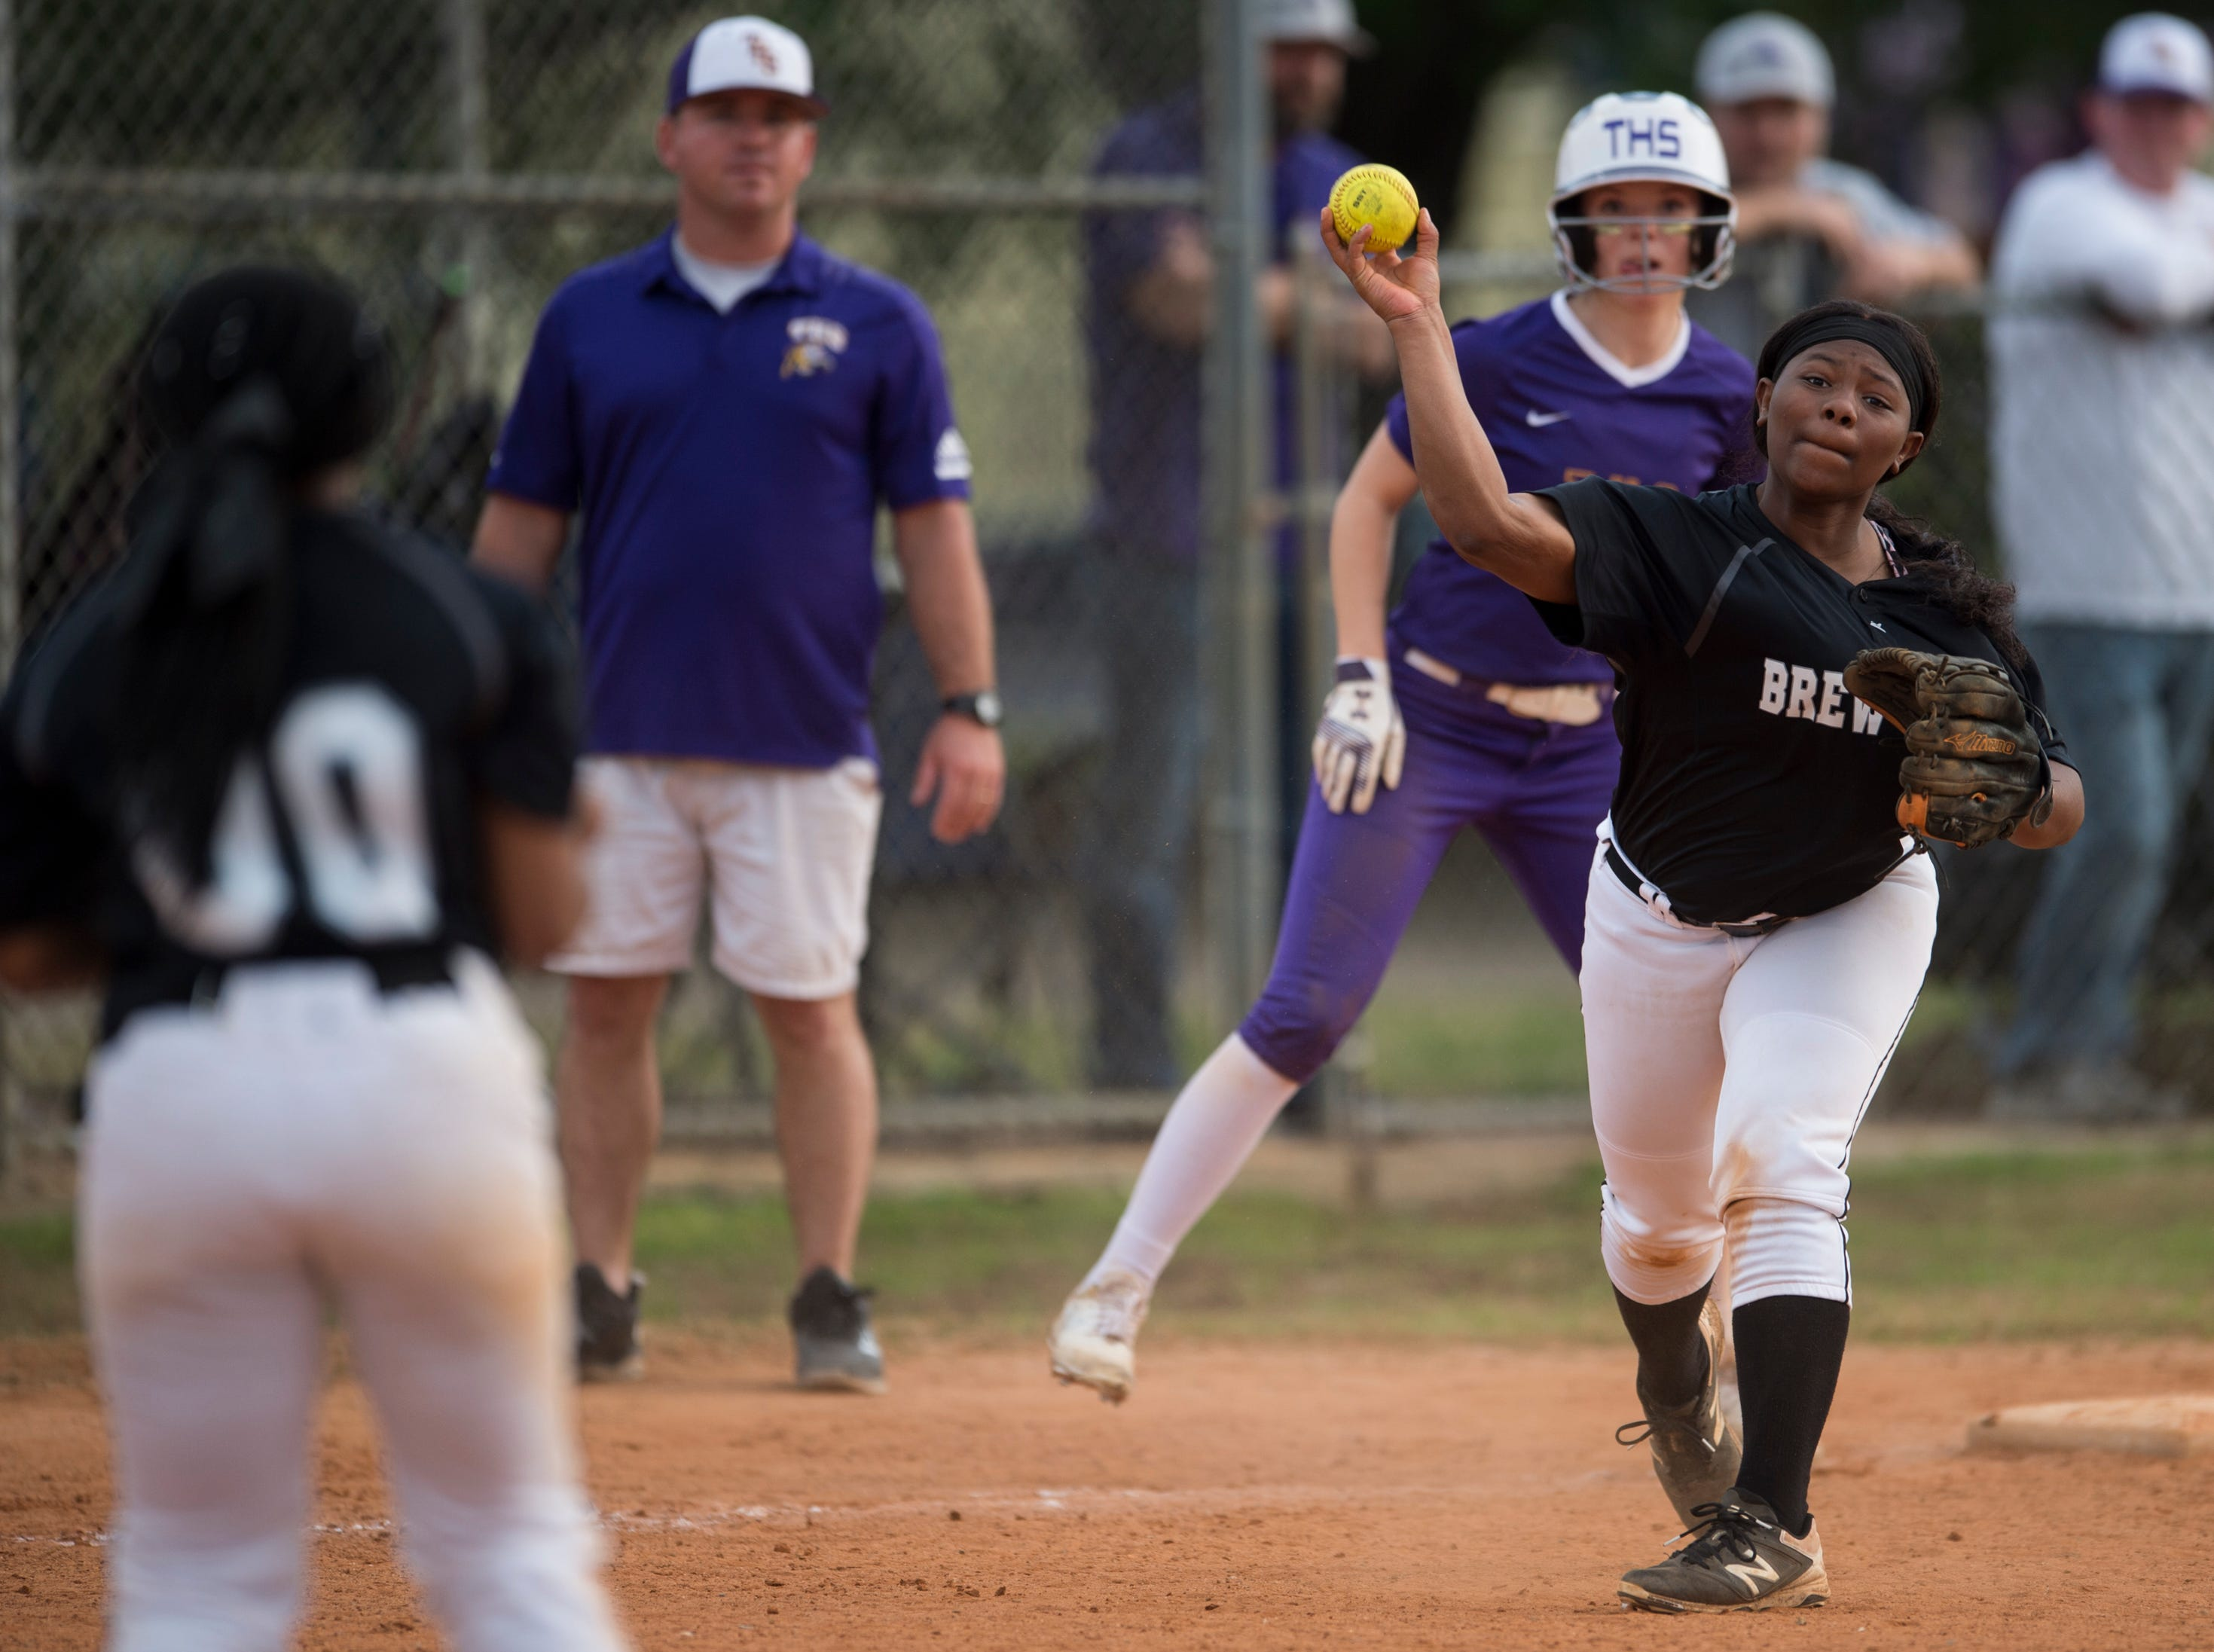 Brew Tech's Janeen White (1) throws to first base from third base at Thompson Park in Montgomery, Ala., on Thursday, March 14, 2019. Tallassee defeated Brew Tech 7-0.